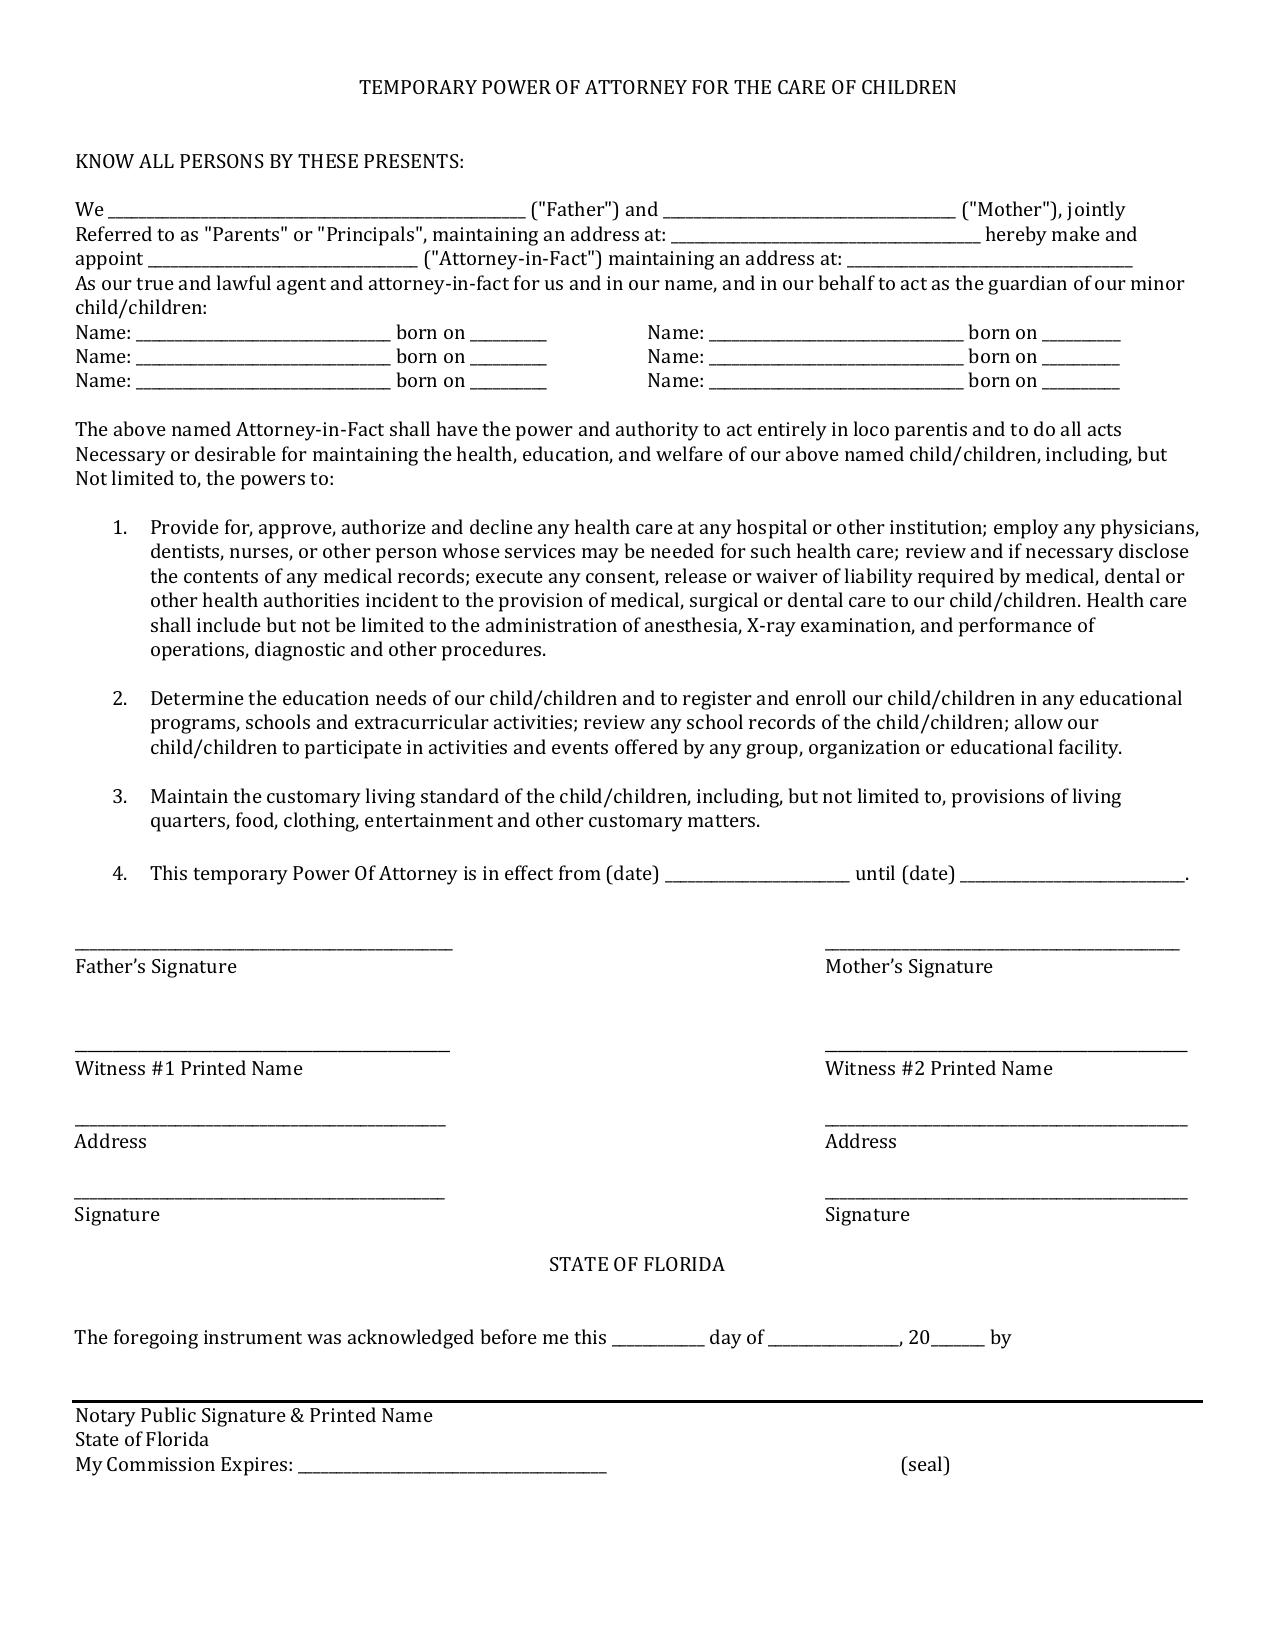 Forms For Power Of Attorney In Florida